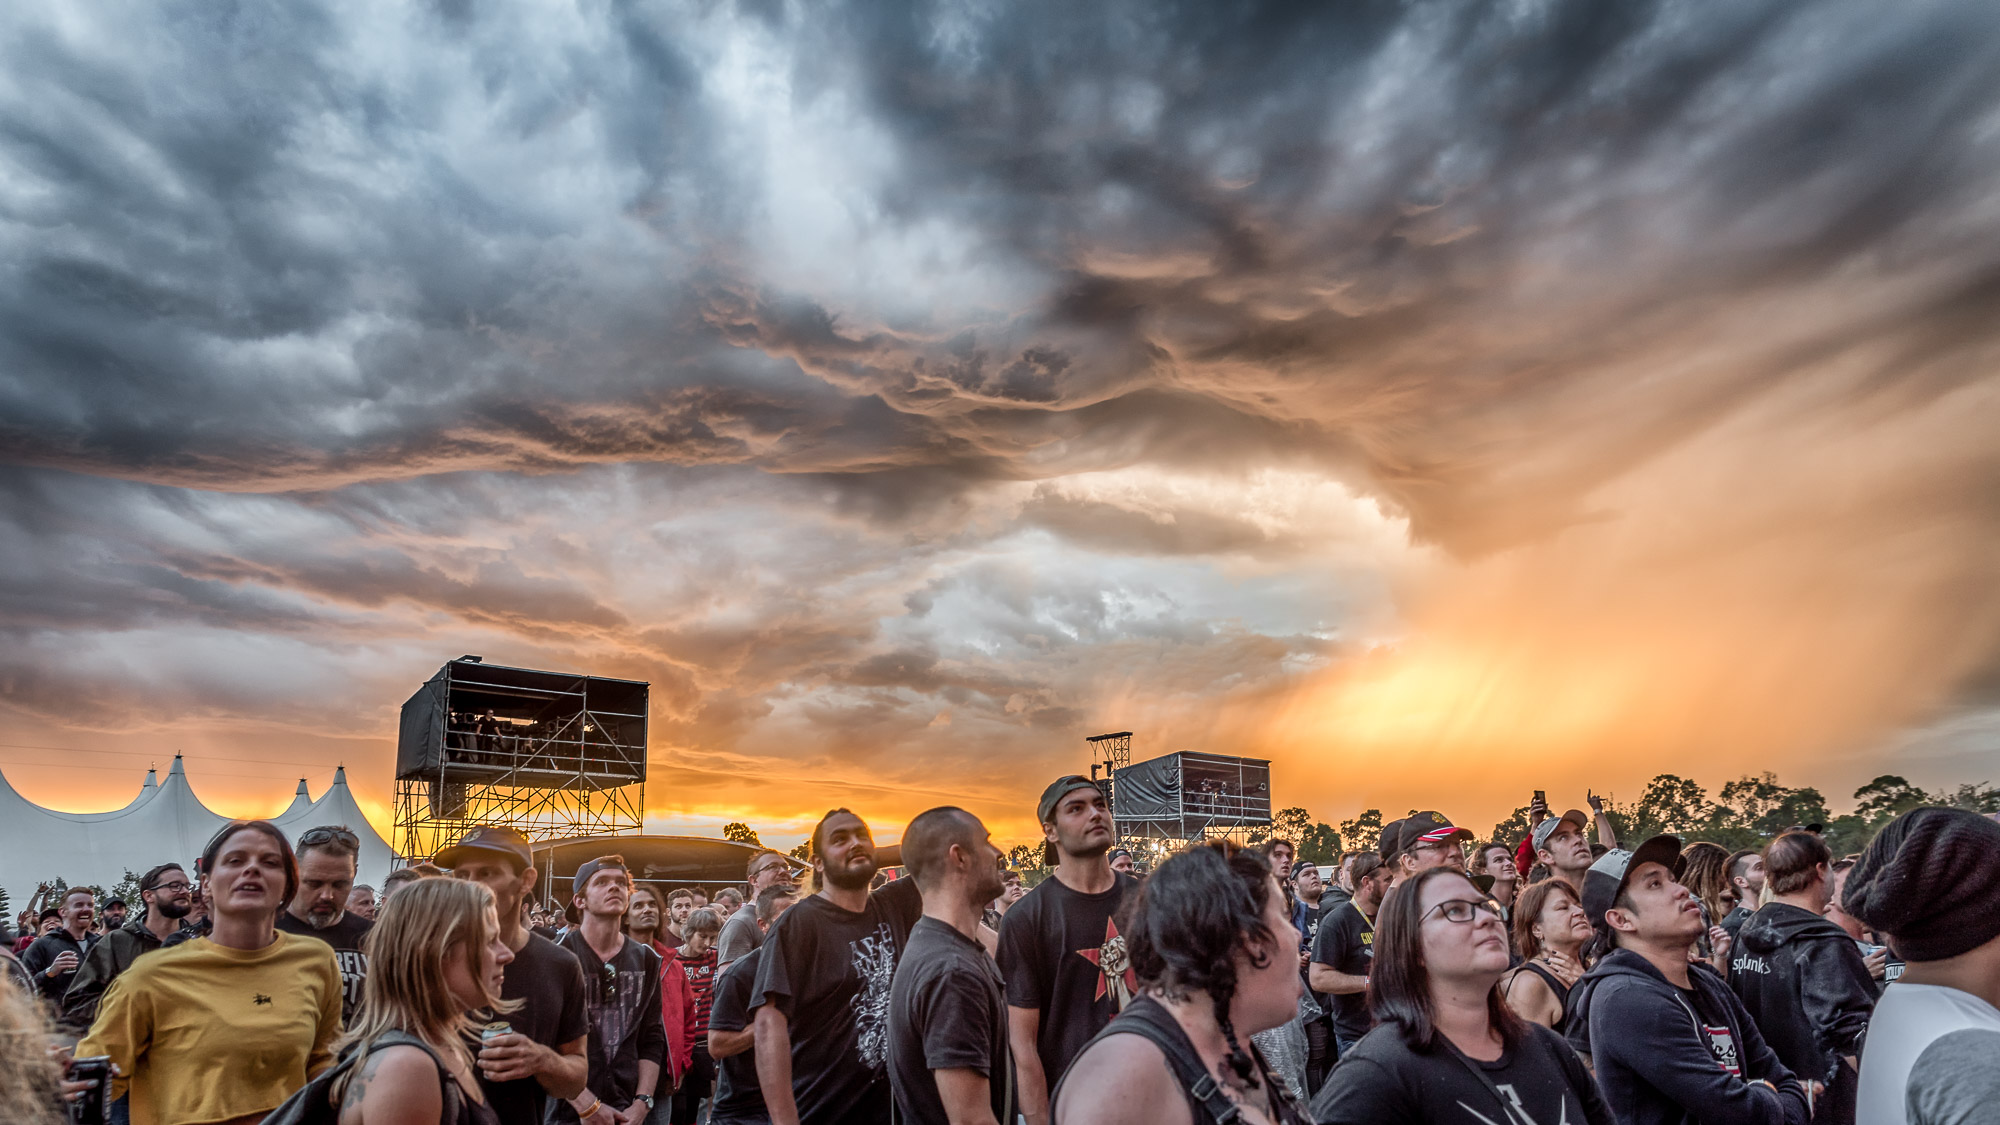 Download Festival Melbourne 2018 - Paul Tadday Photography - 049.jpg